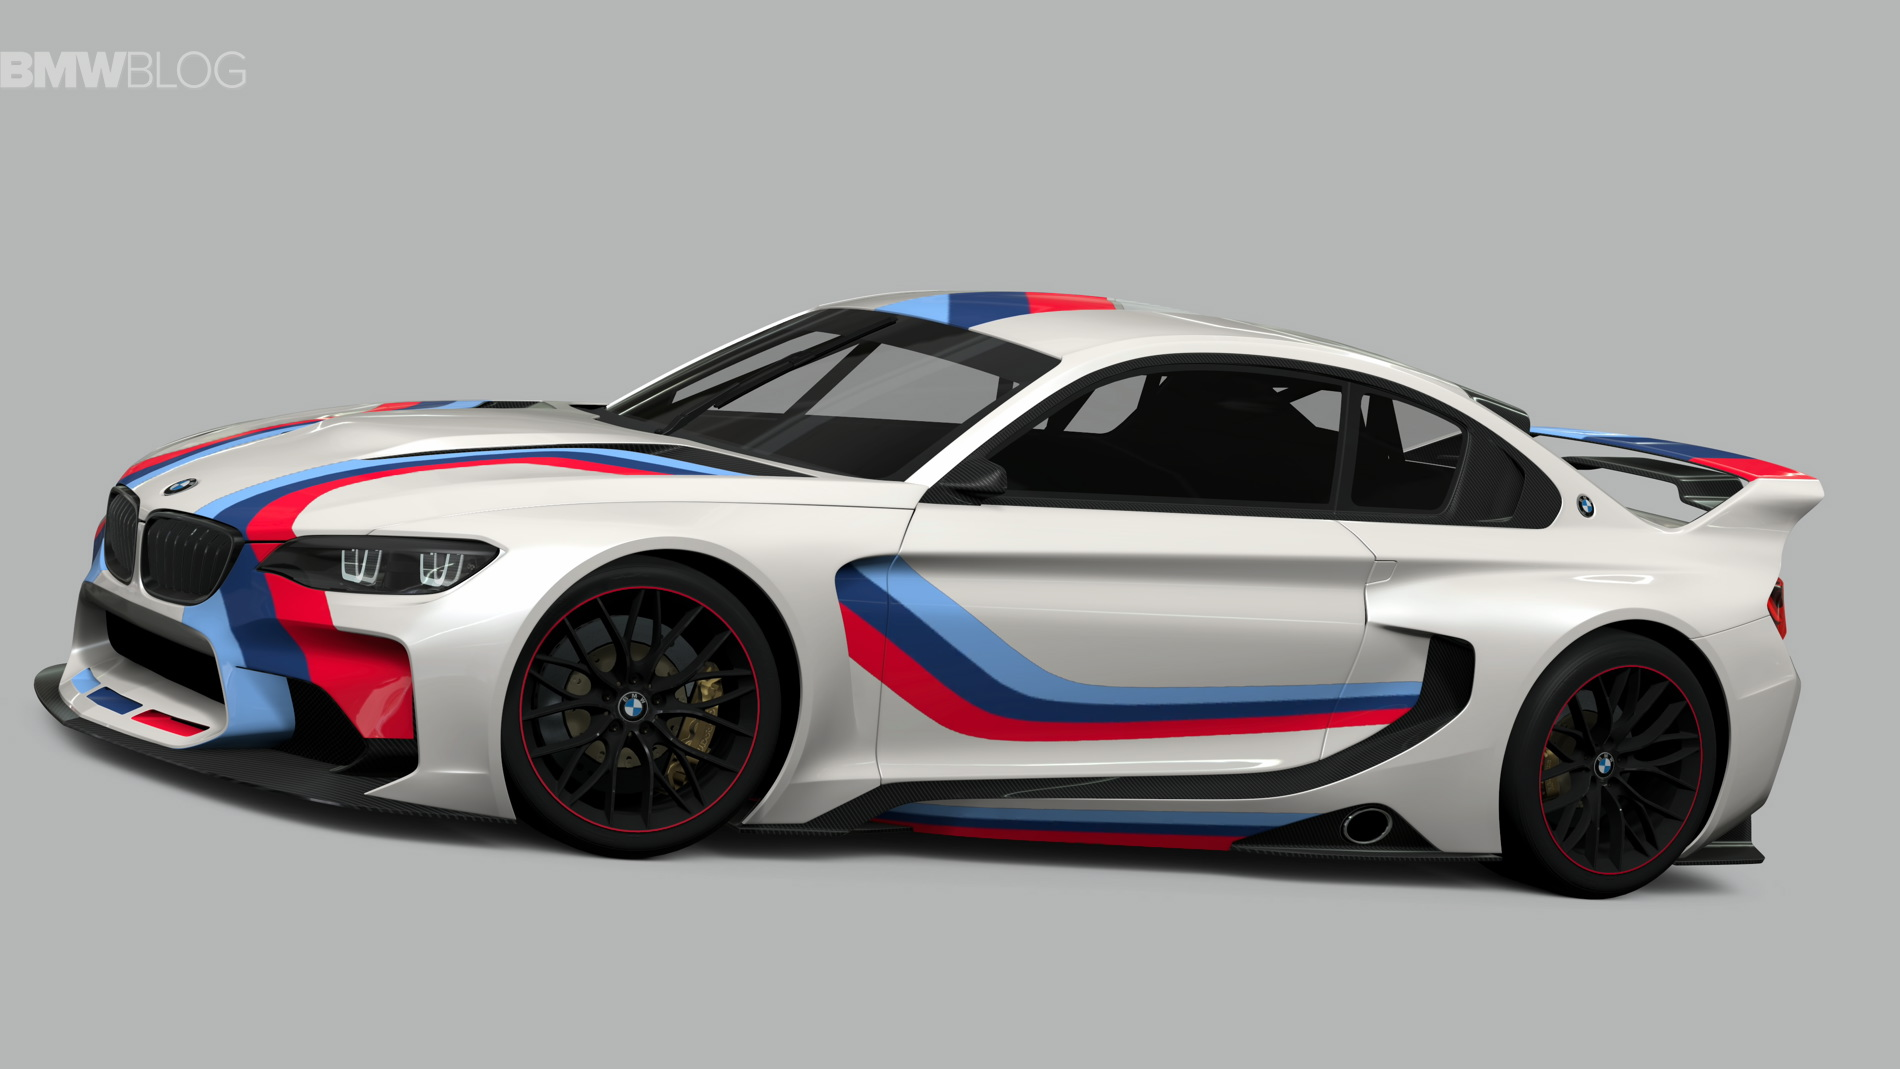 Bmw M2 Csl Could Take On The Porsche Gt4